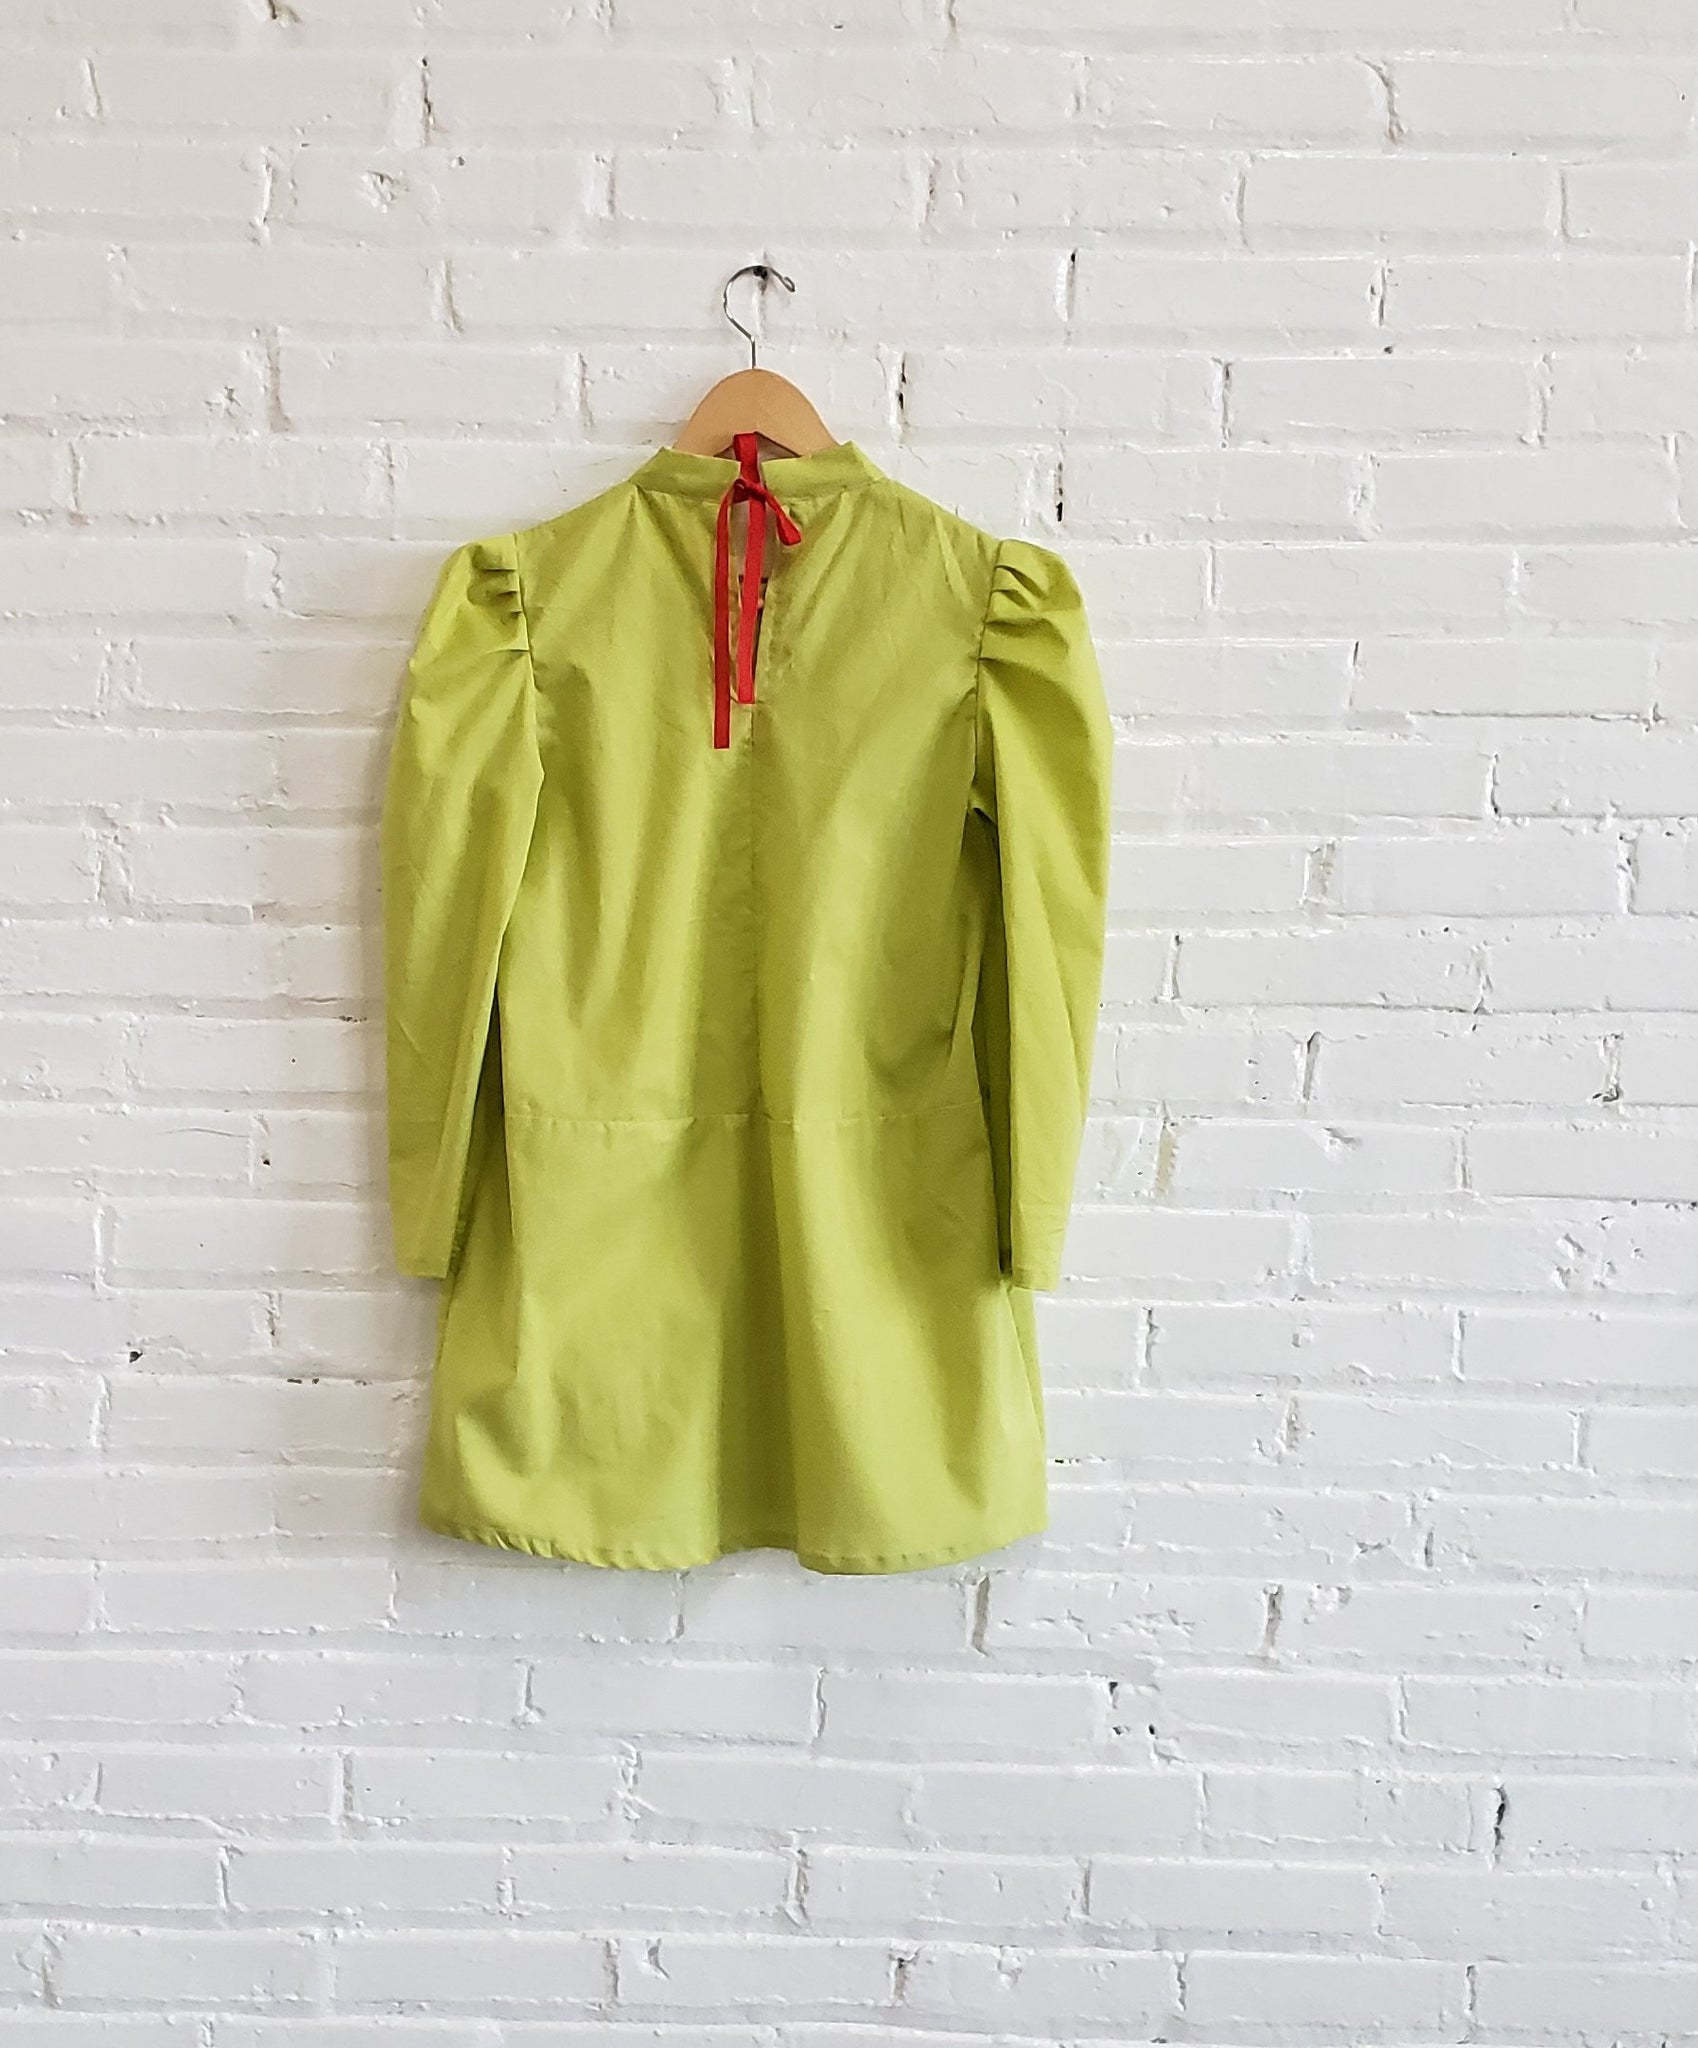 lime green mini dress with puffy sleeves and poppy red ribbon tie, displayed hanging against a white brick wall